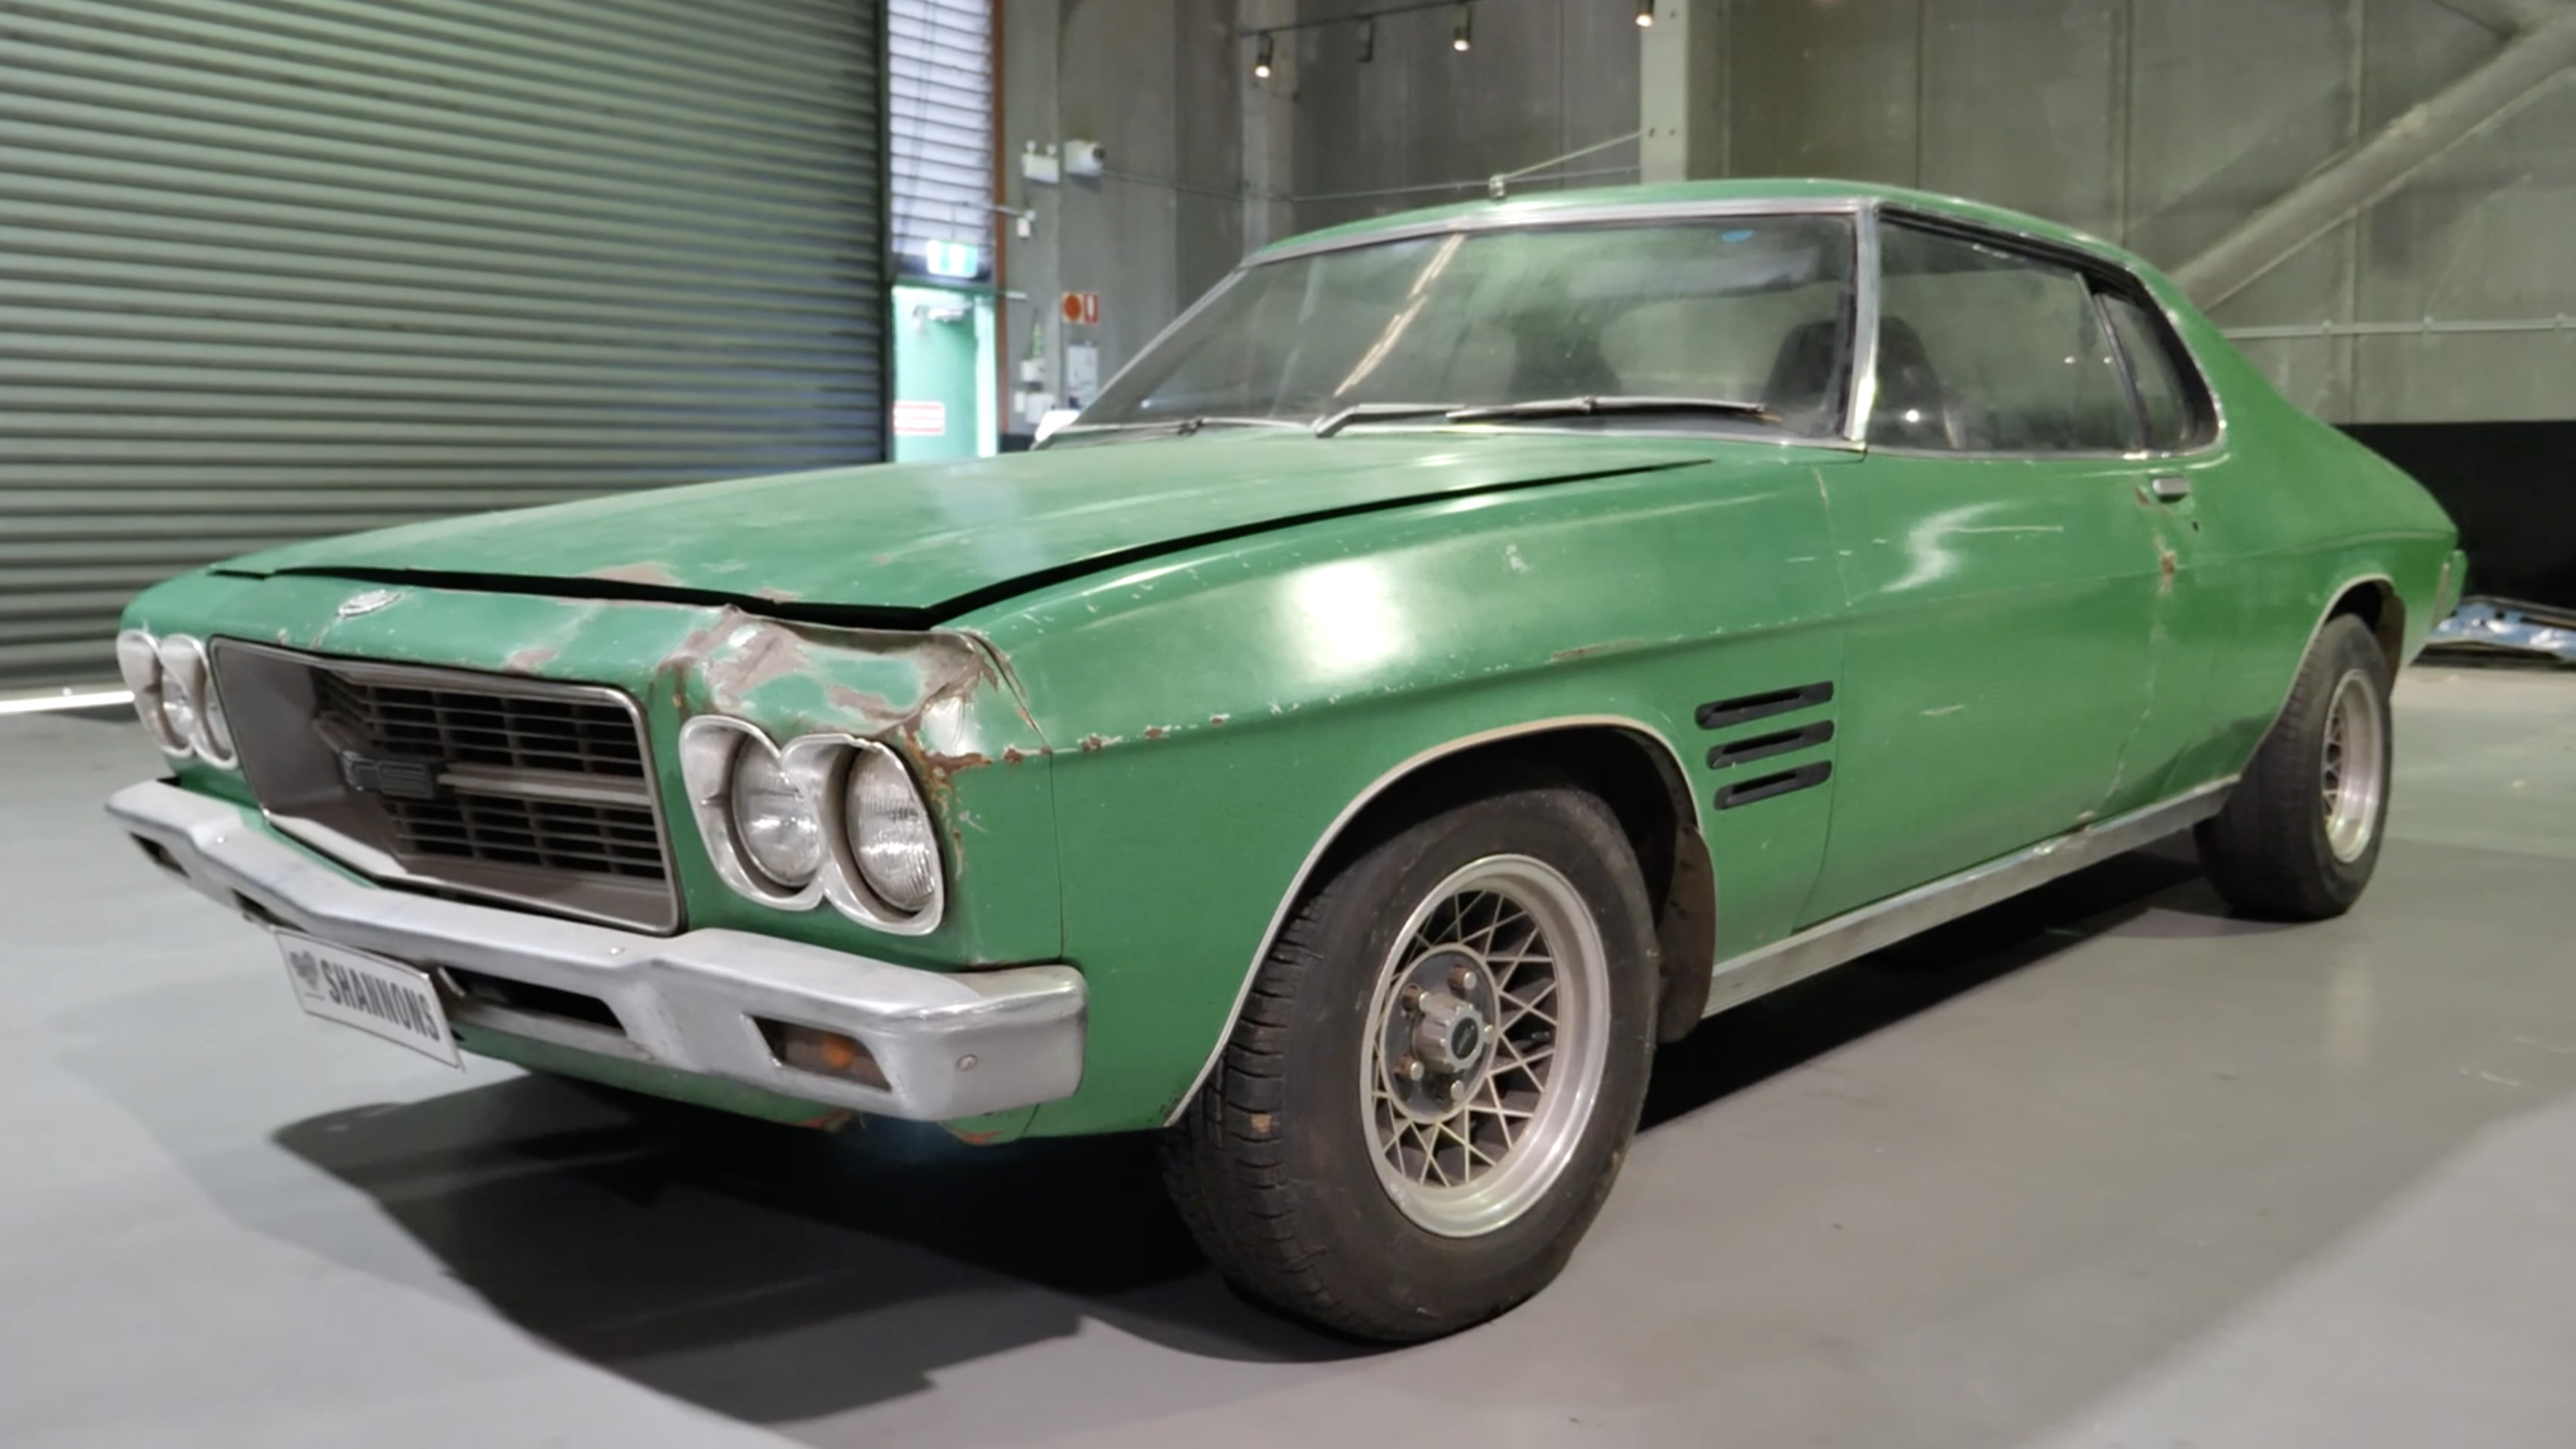 1971 Holden HQ LS Monaro 253 Coupe (Project) - 2020 Shannons Spring Timed Online Auction